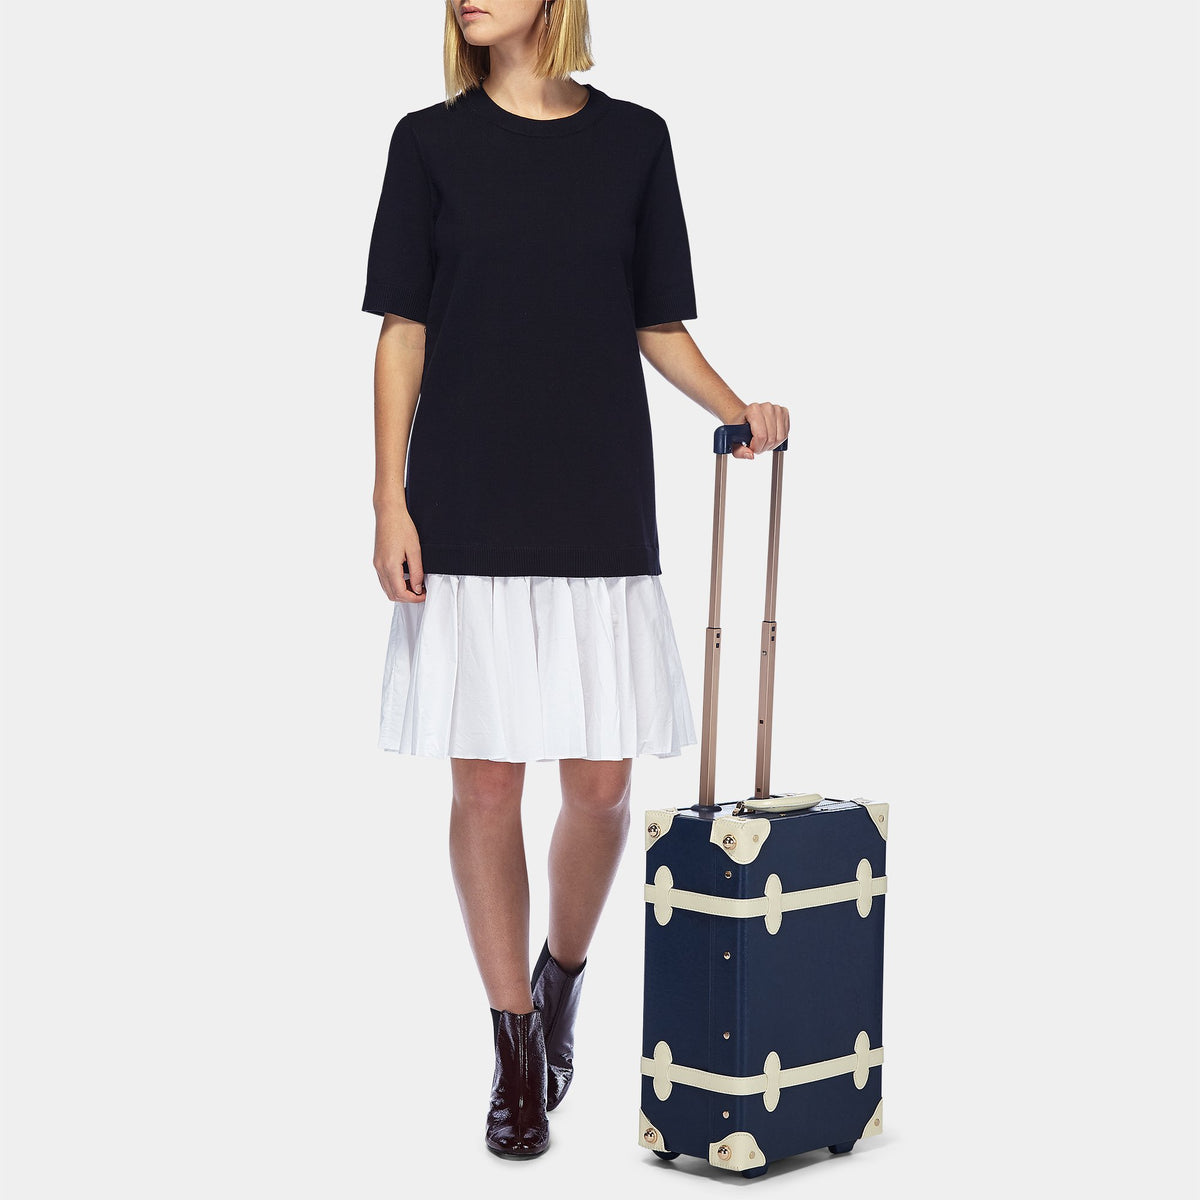 The Entrepreneur Carryon in Navy - Vintage-Inspired Luggage - Exterior Front with Model